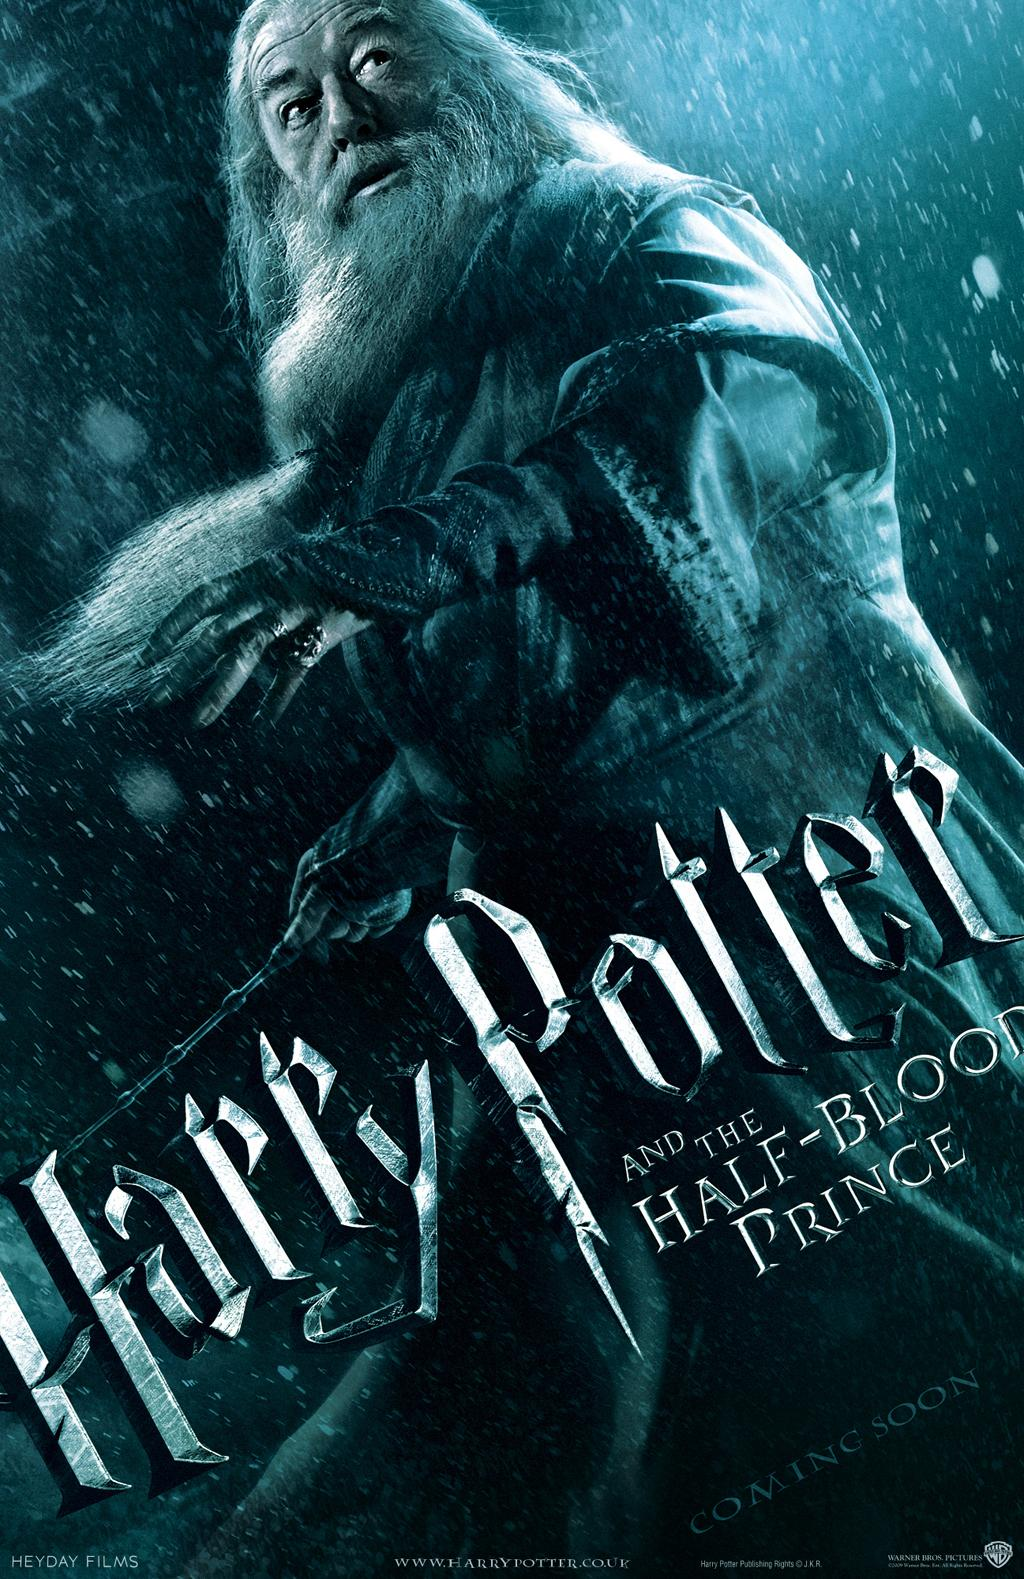 Hbp_promo_officialposter_02